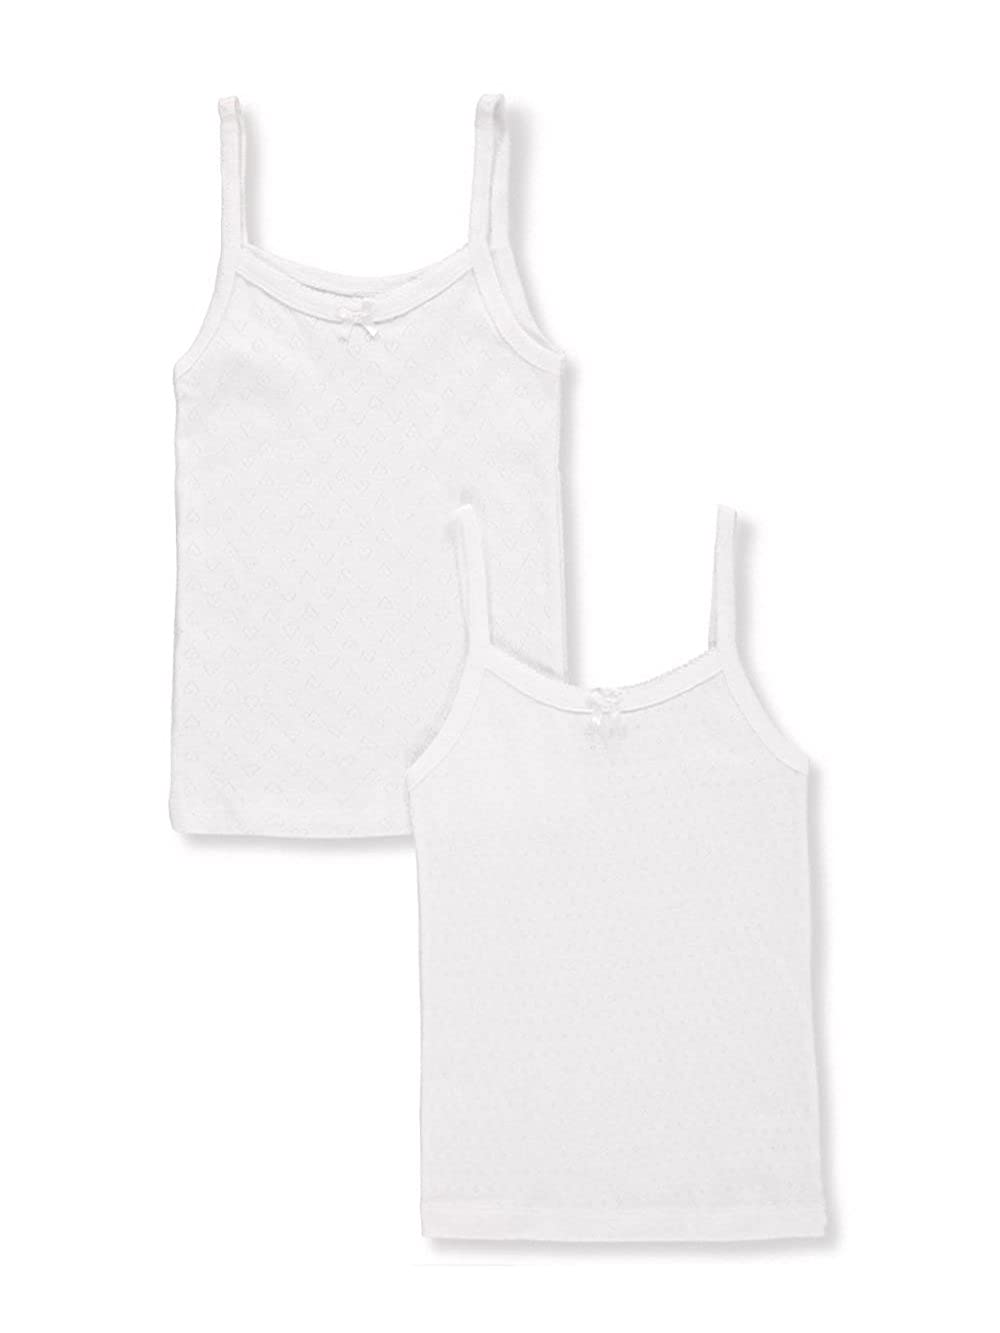 Marilyn Taylor Girls' 2-Pack Camis